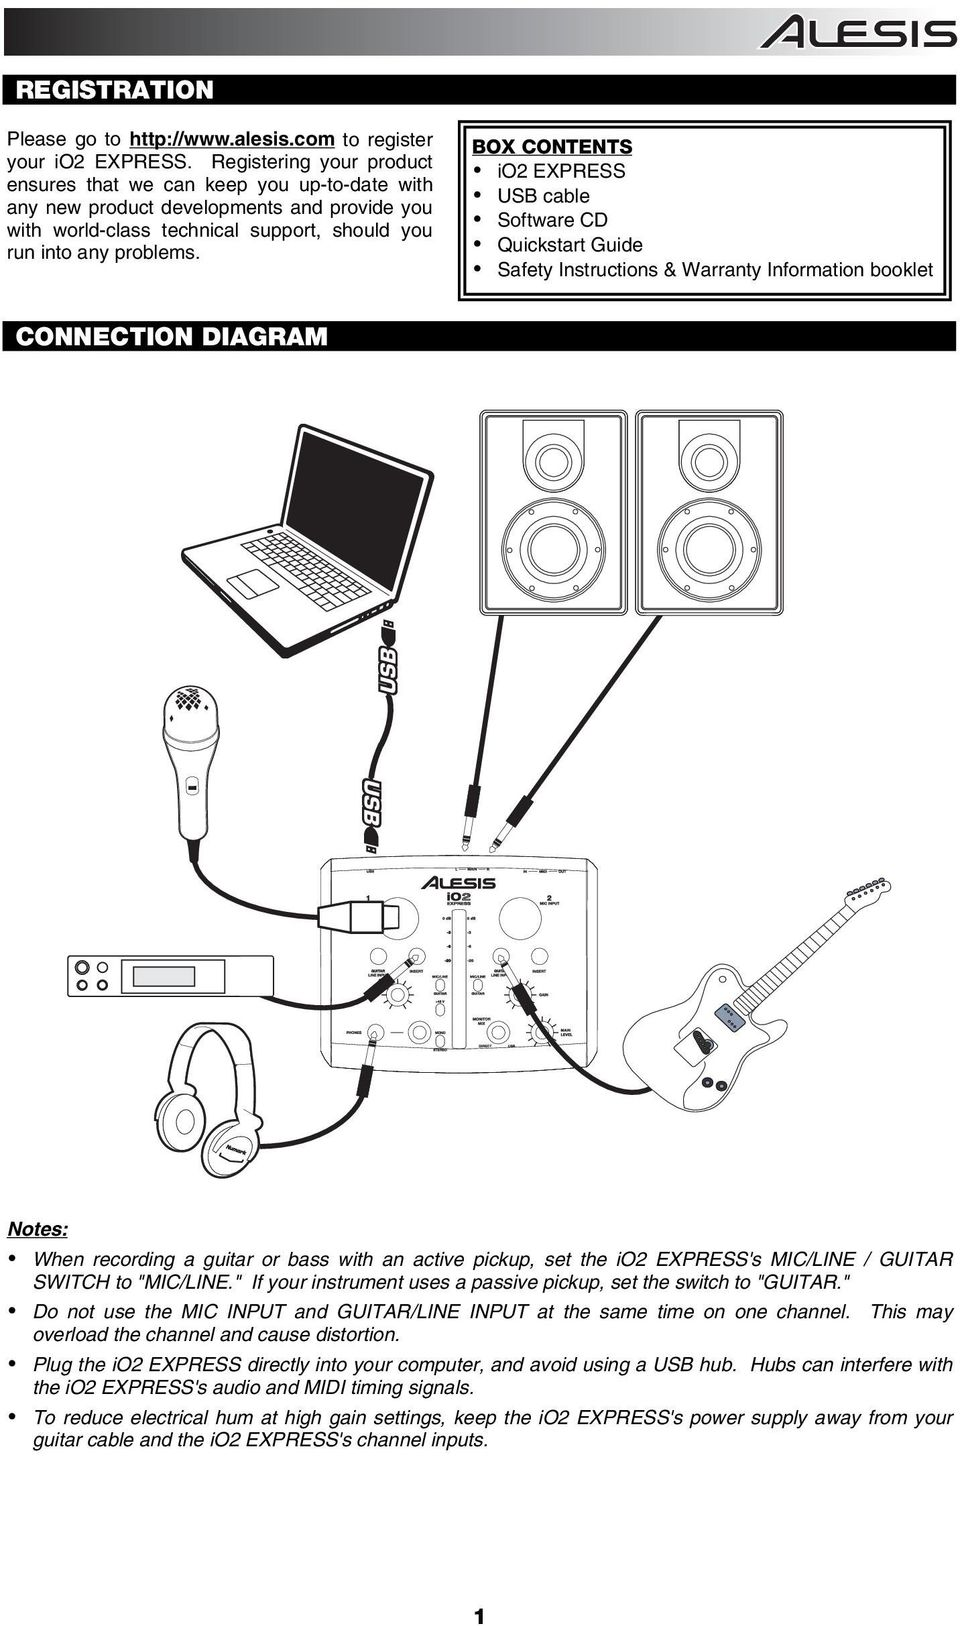 BOX CONTENTS io2 EXPRESS USB cable Software CD Quickstart Guide Safety Instructions & Warranty Information booklet CONNECTION DIAGRAM Notes: When recording a guitar or bass with an active pickup, set